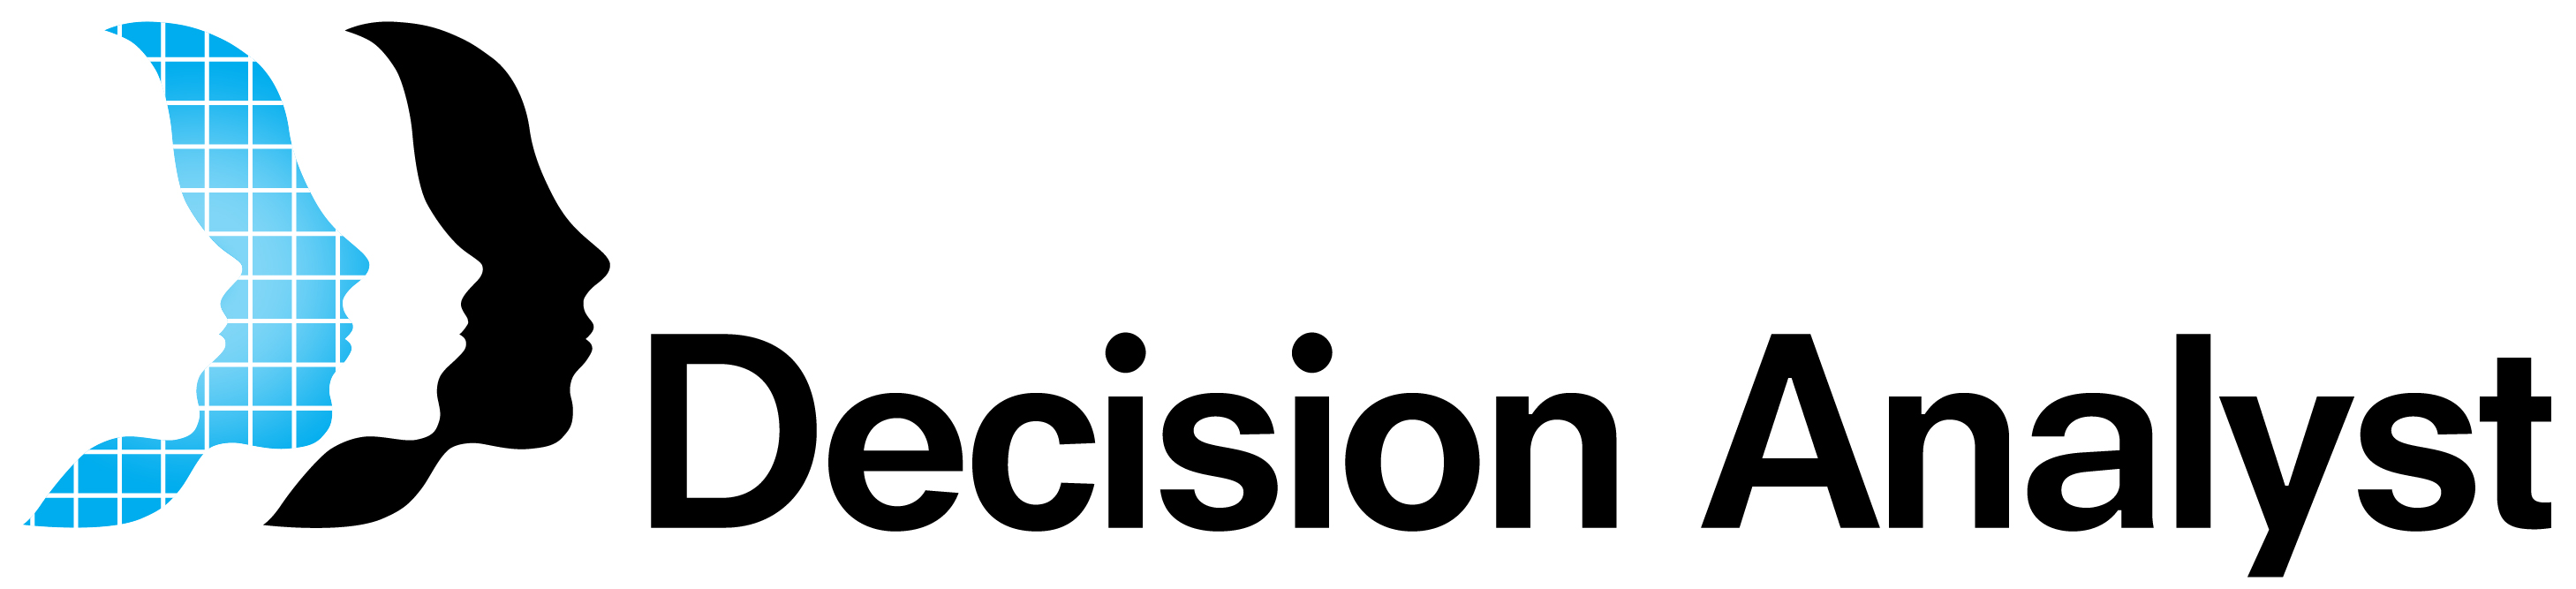 Decision Analyst Logo